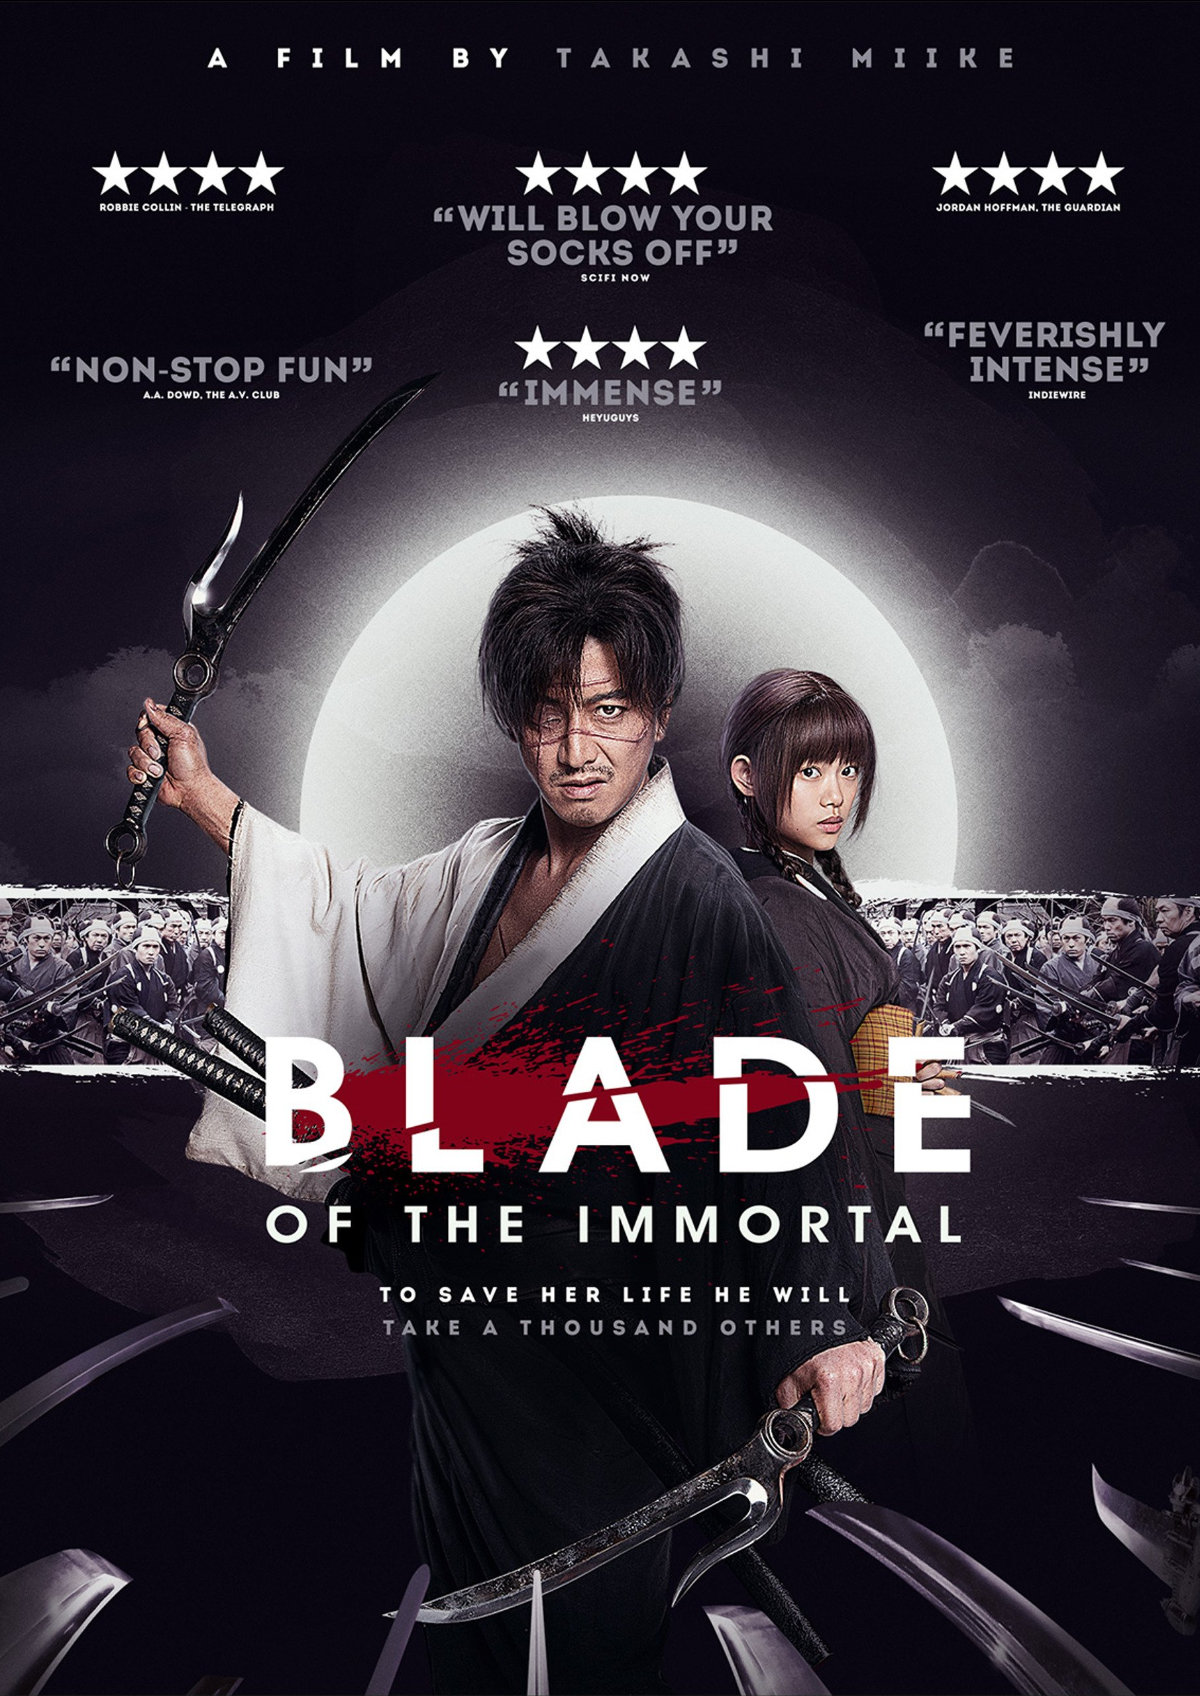 Poster for 'Blade Of The Immortal'